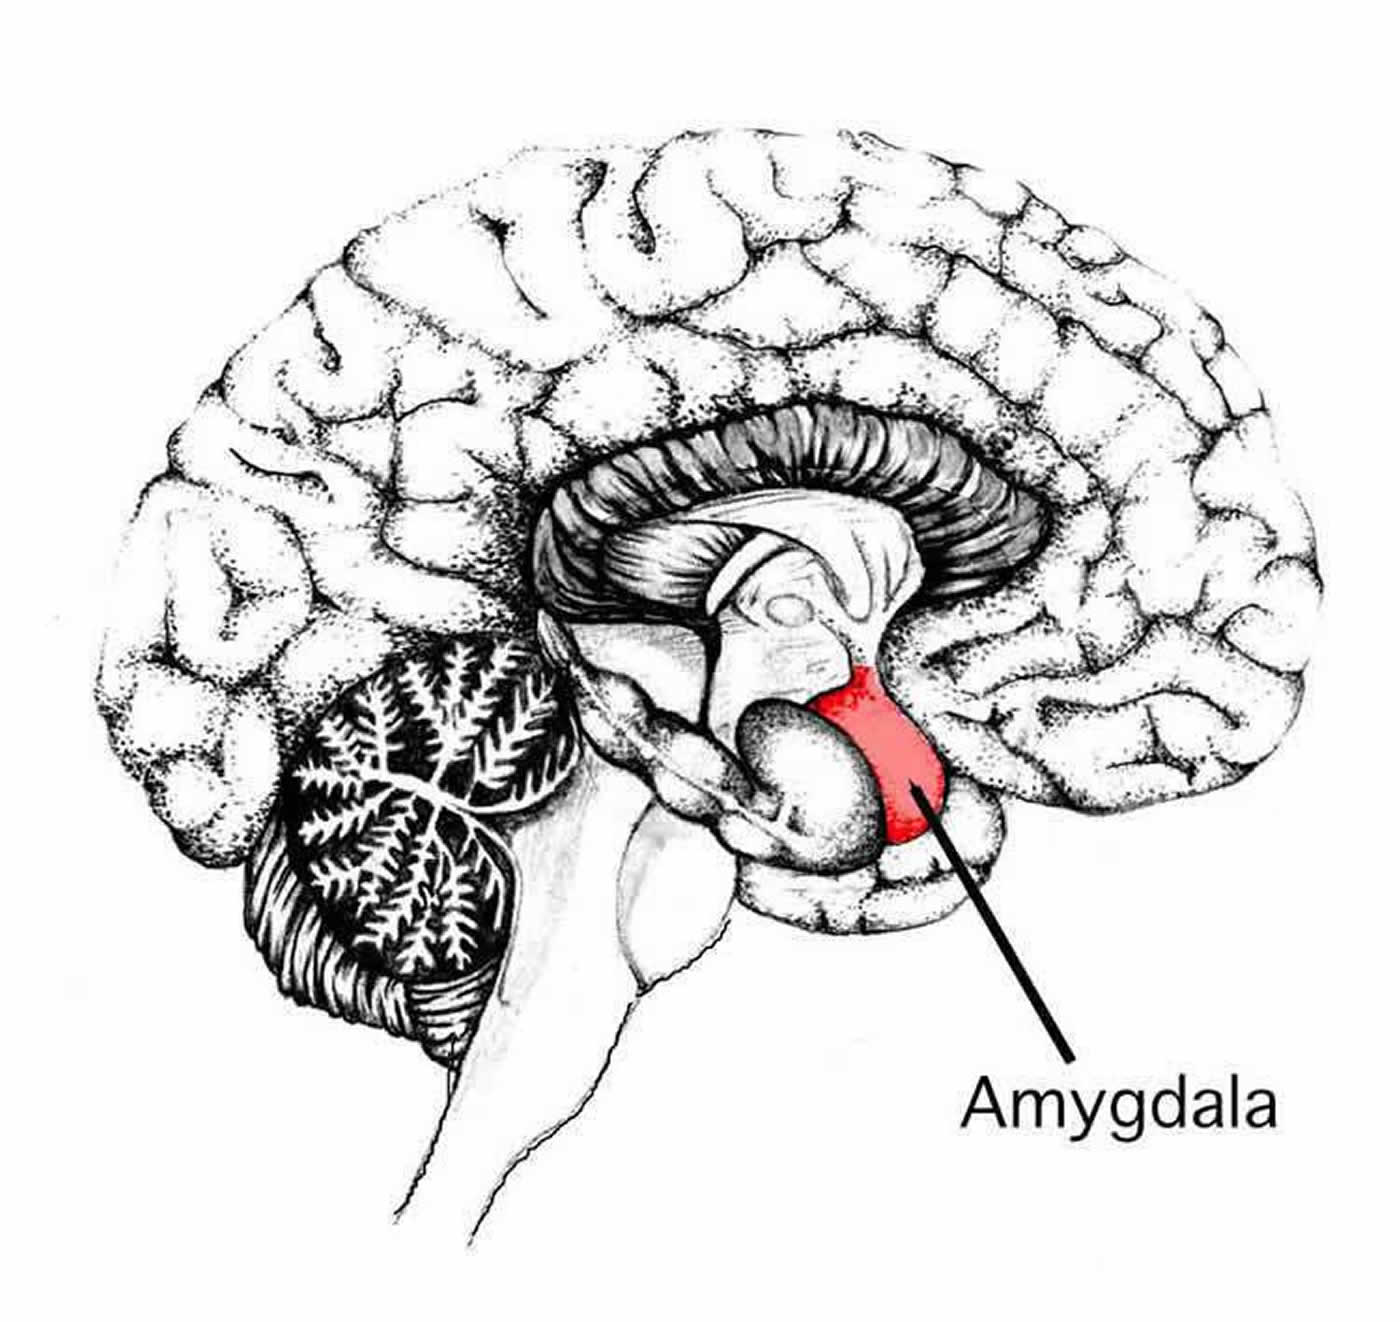 Amygdala Changes in Male Patients with Schizophrenia and Bipolar Disorder - Neuroscience News